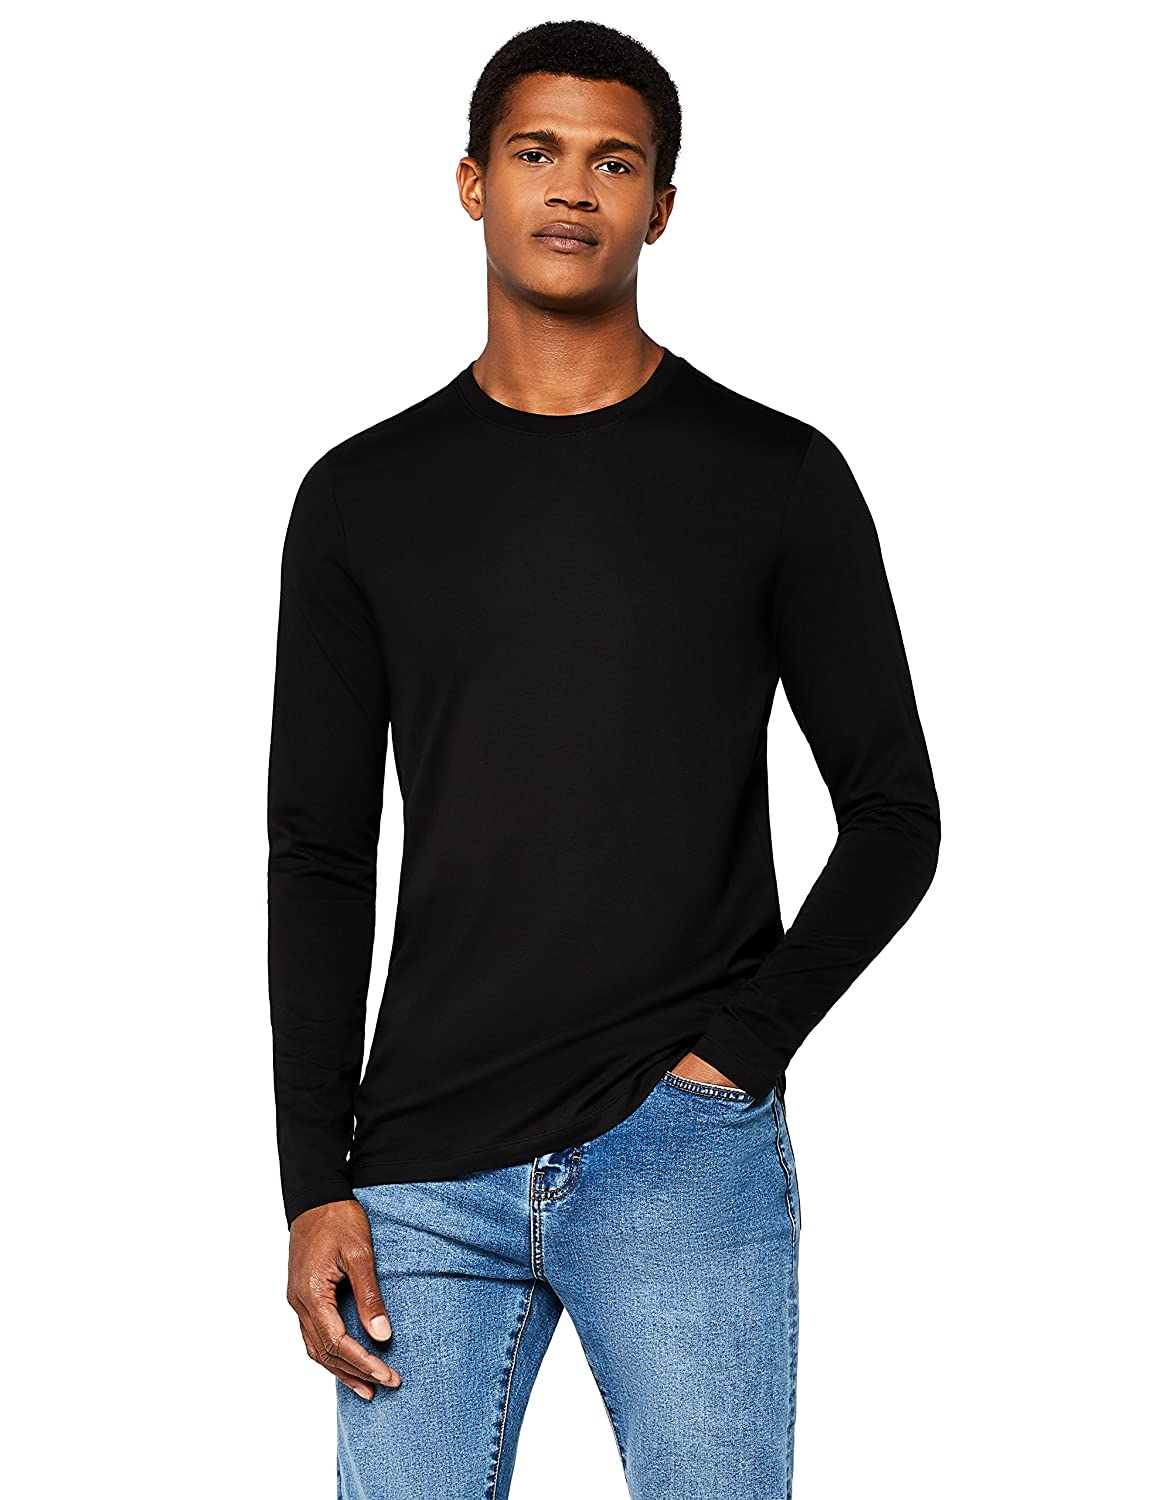 MERAKI Men's Slim Fit Crew Neck Long Sleeve T-Shirt AMM013_100